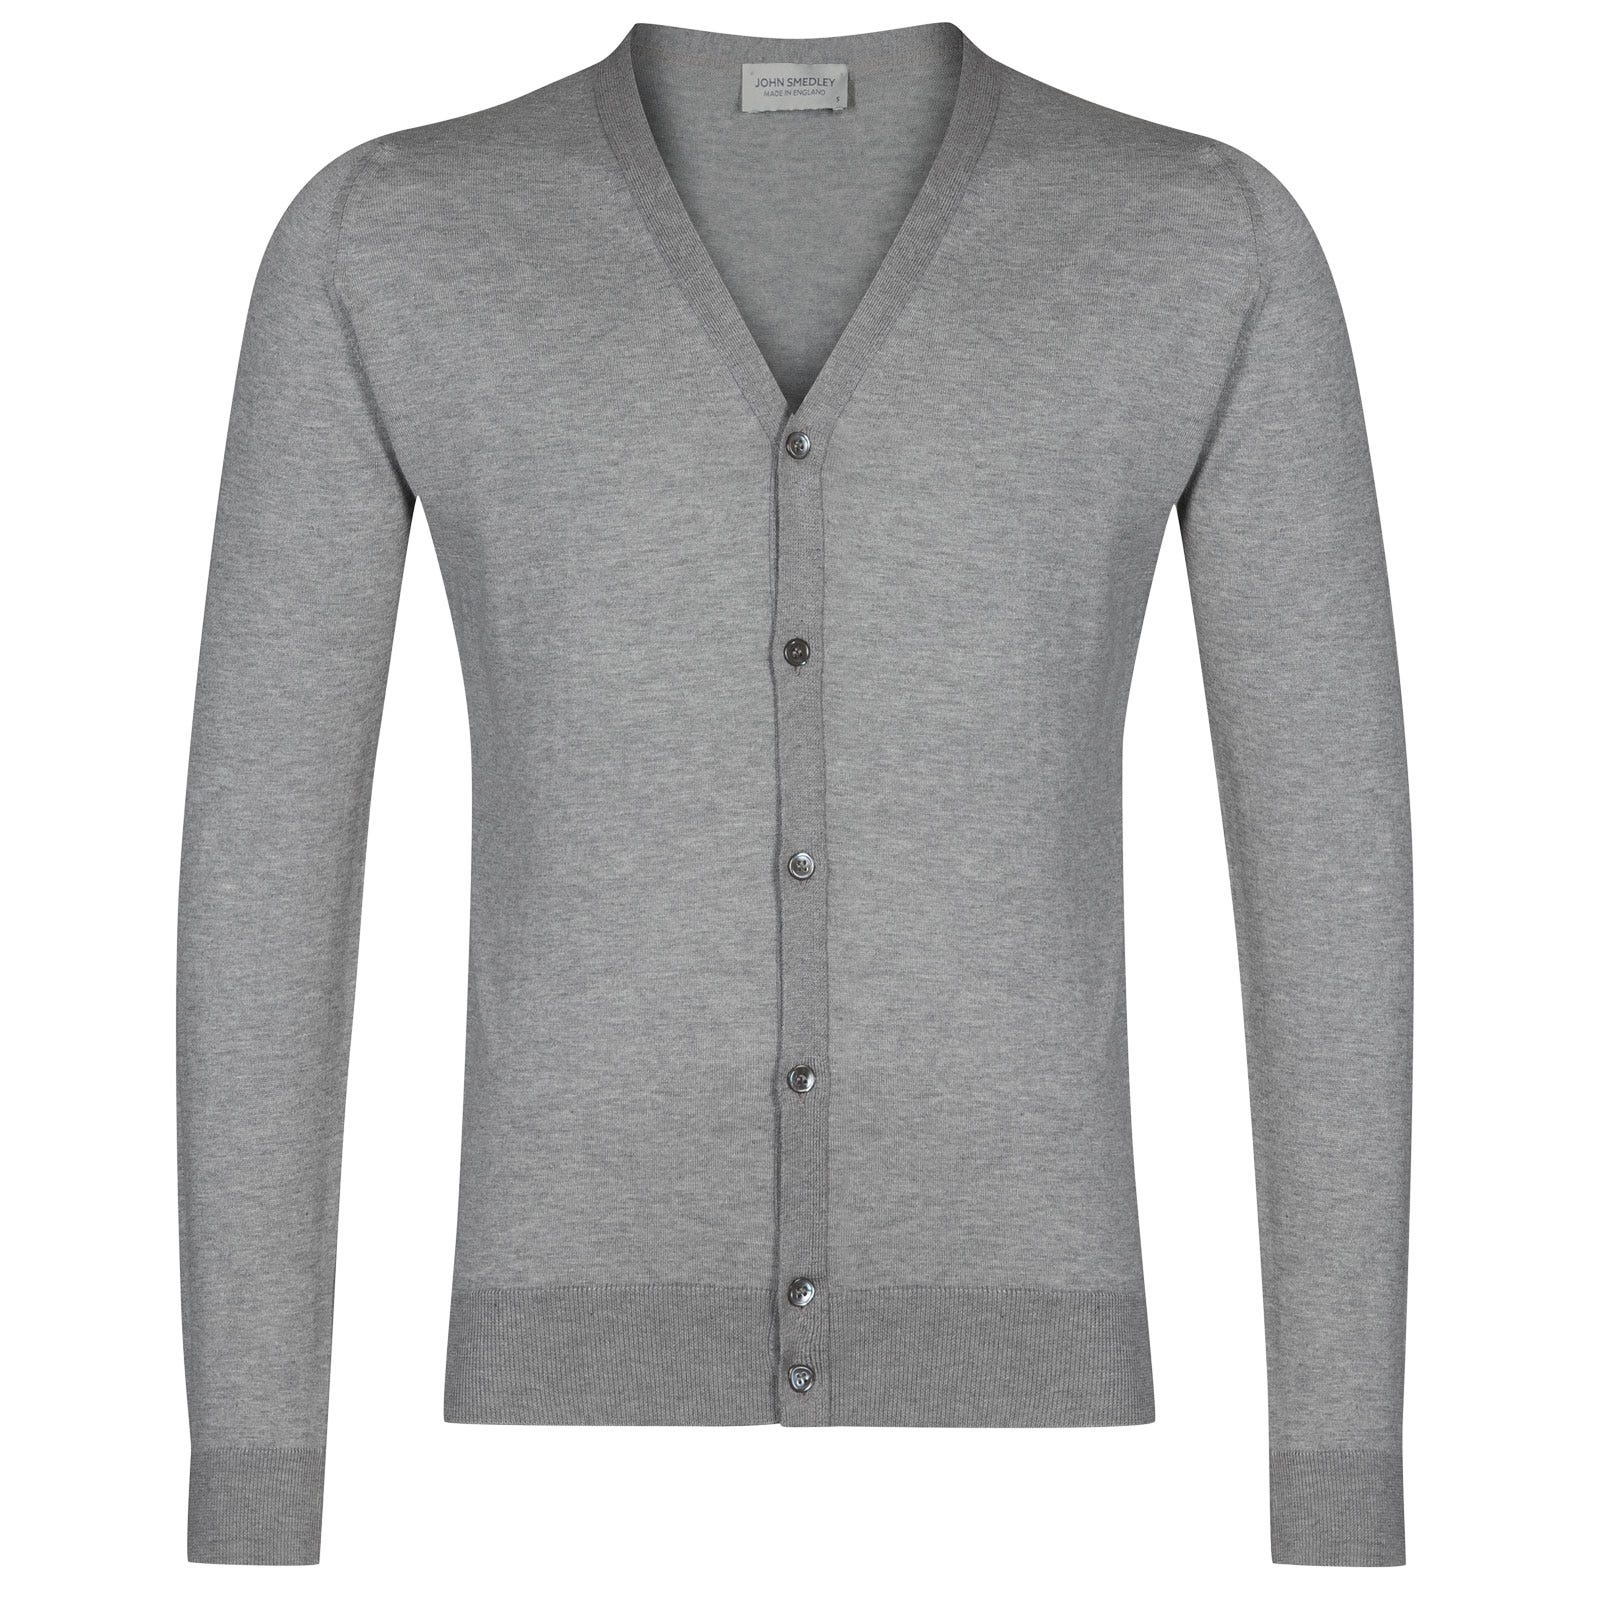 John Smedley whitchurch Sea Island Cotton Cardigan in Silver-XL